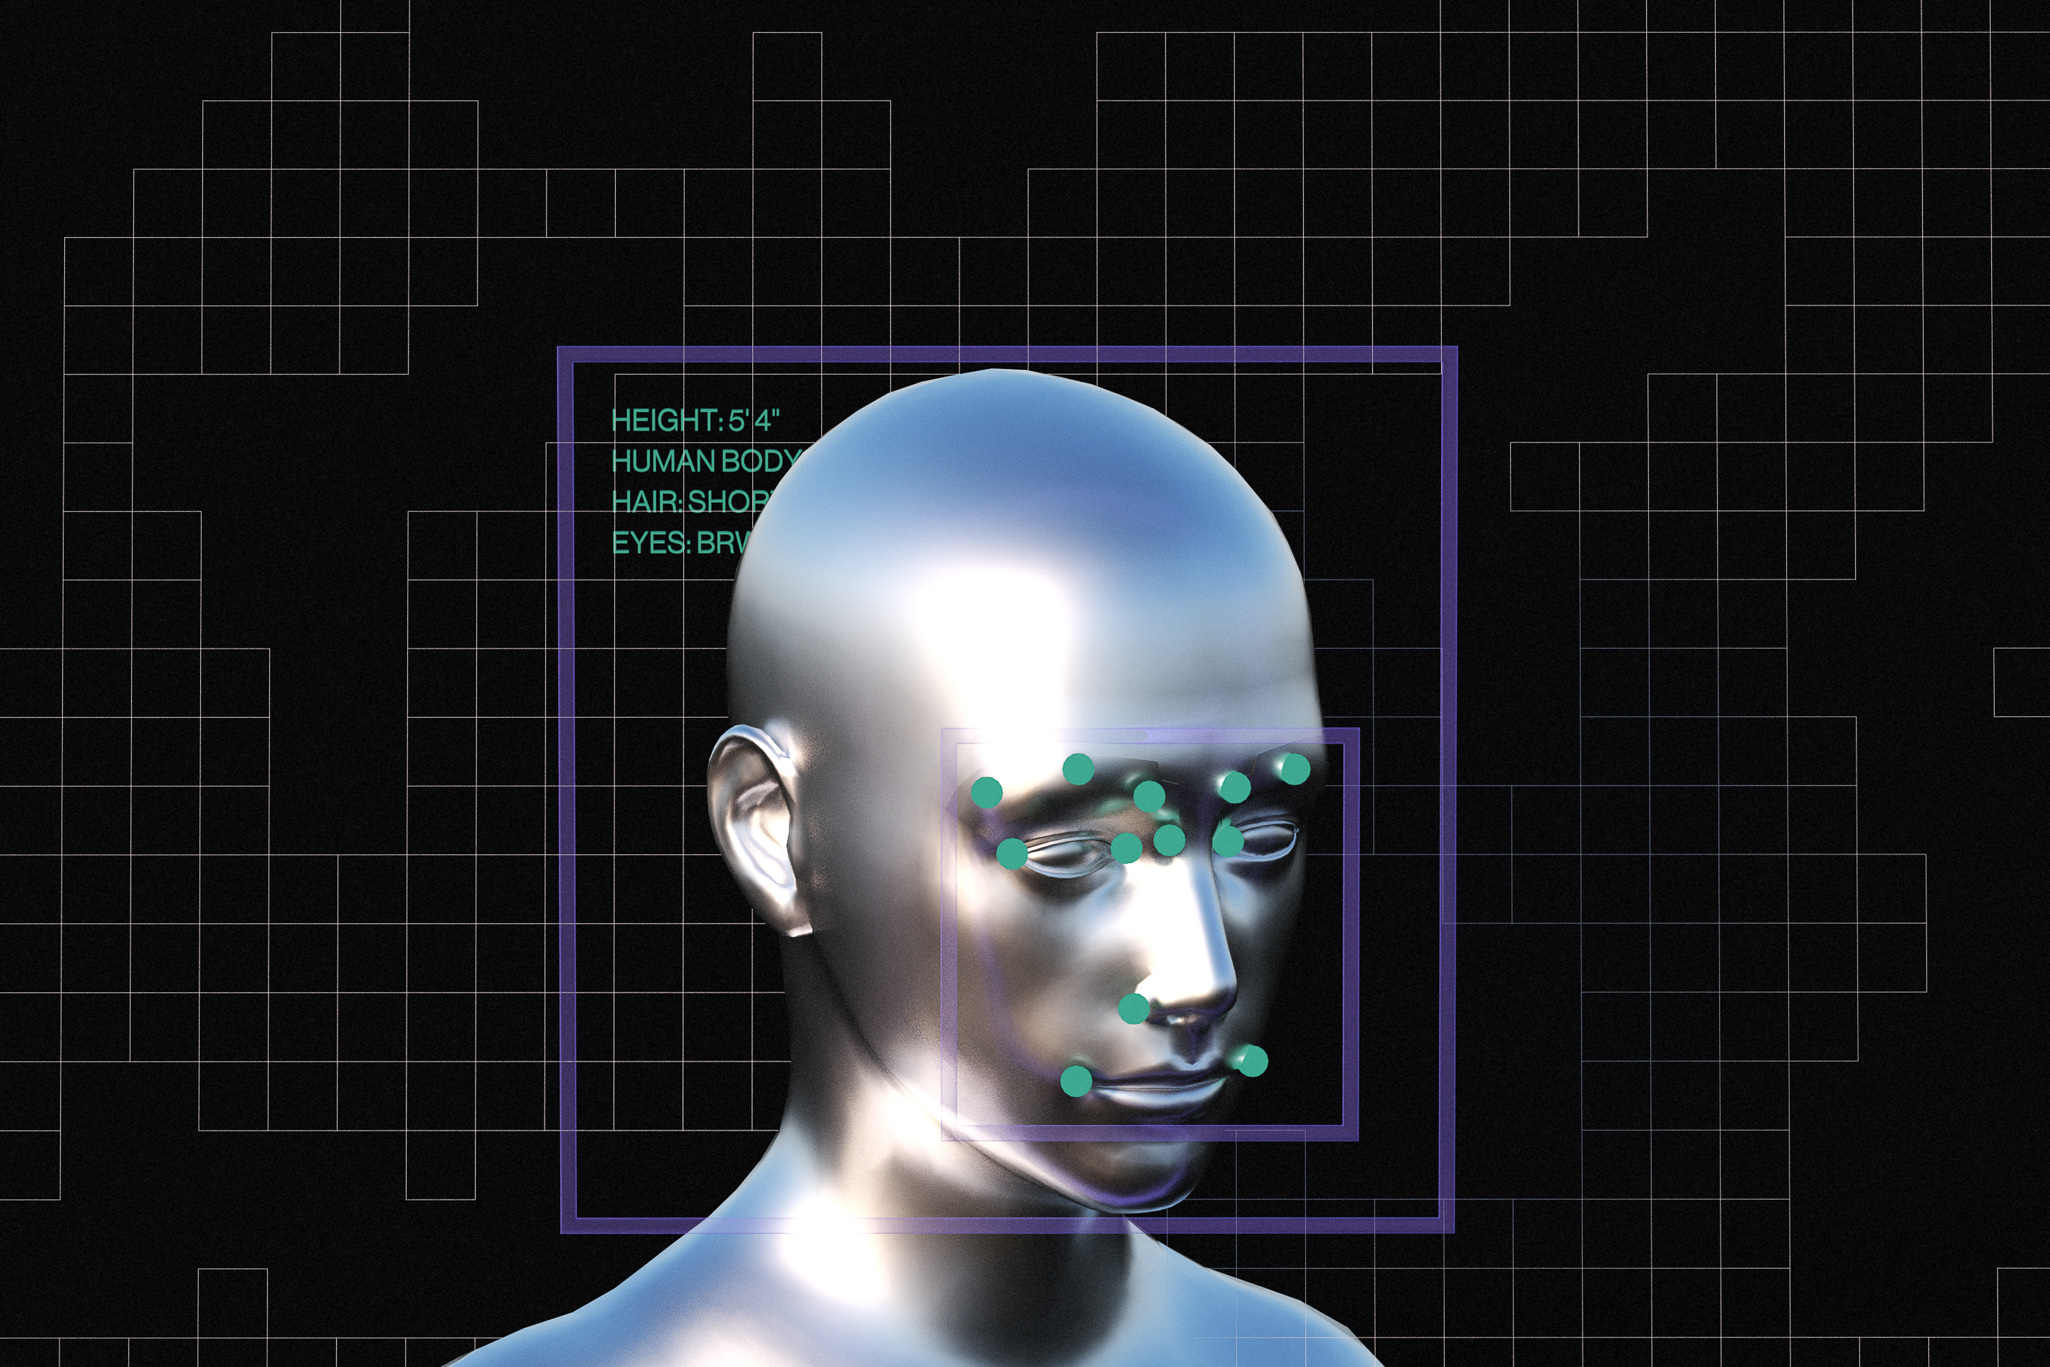 An illustration of a metallic face with illustrative facial tracking points over it.